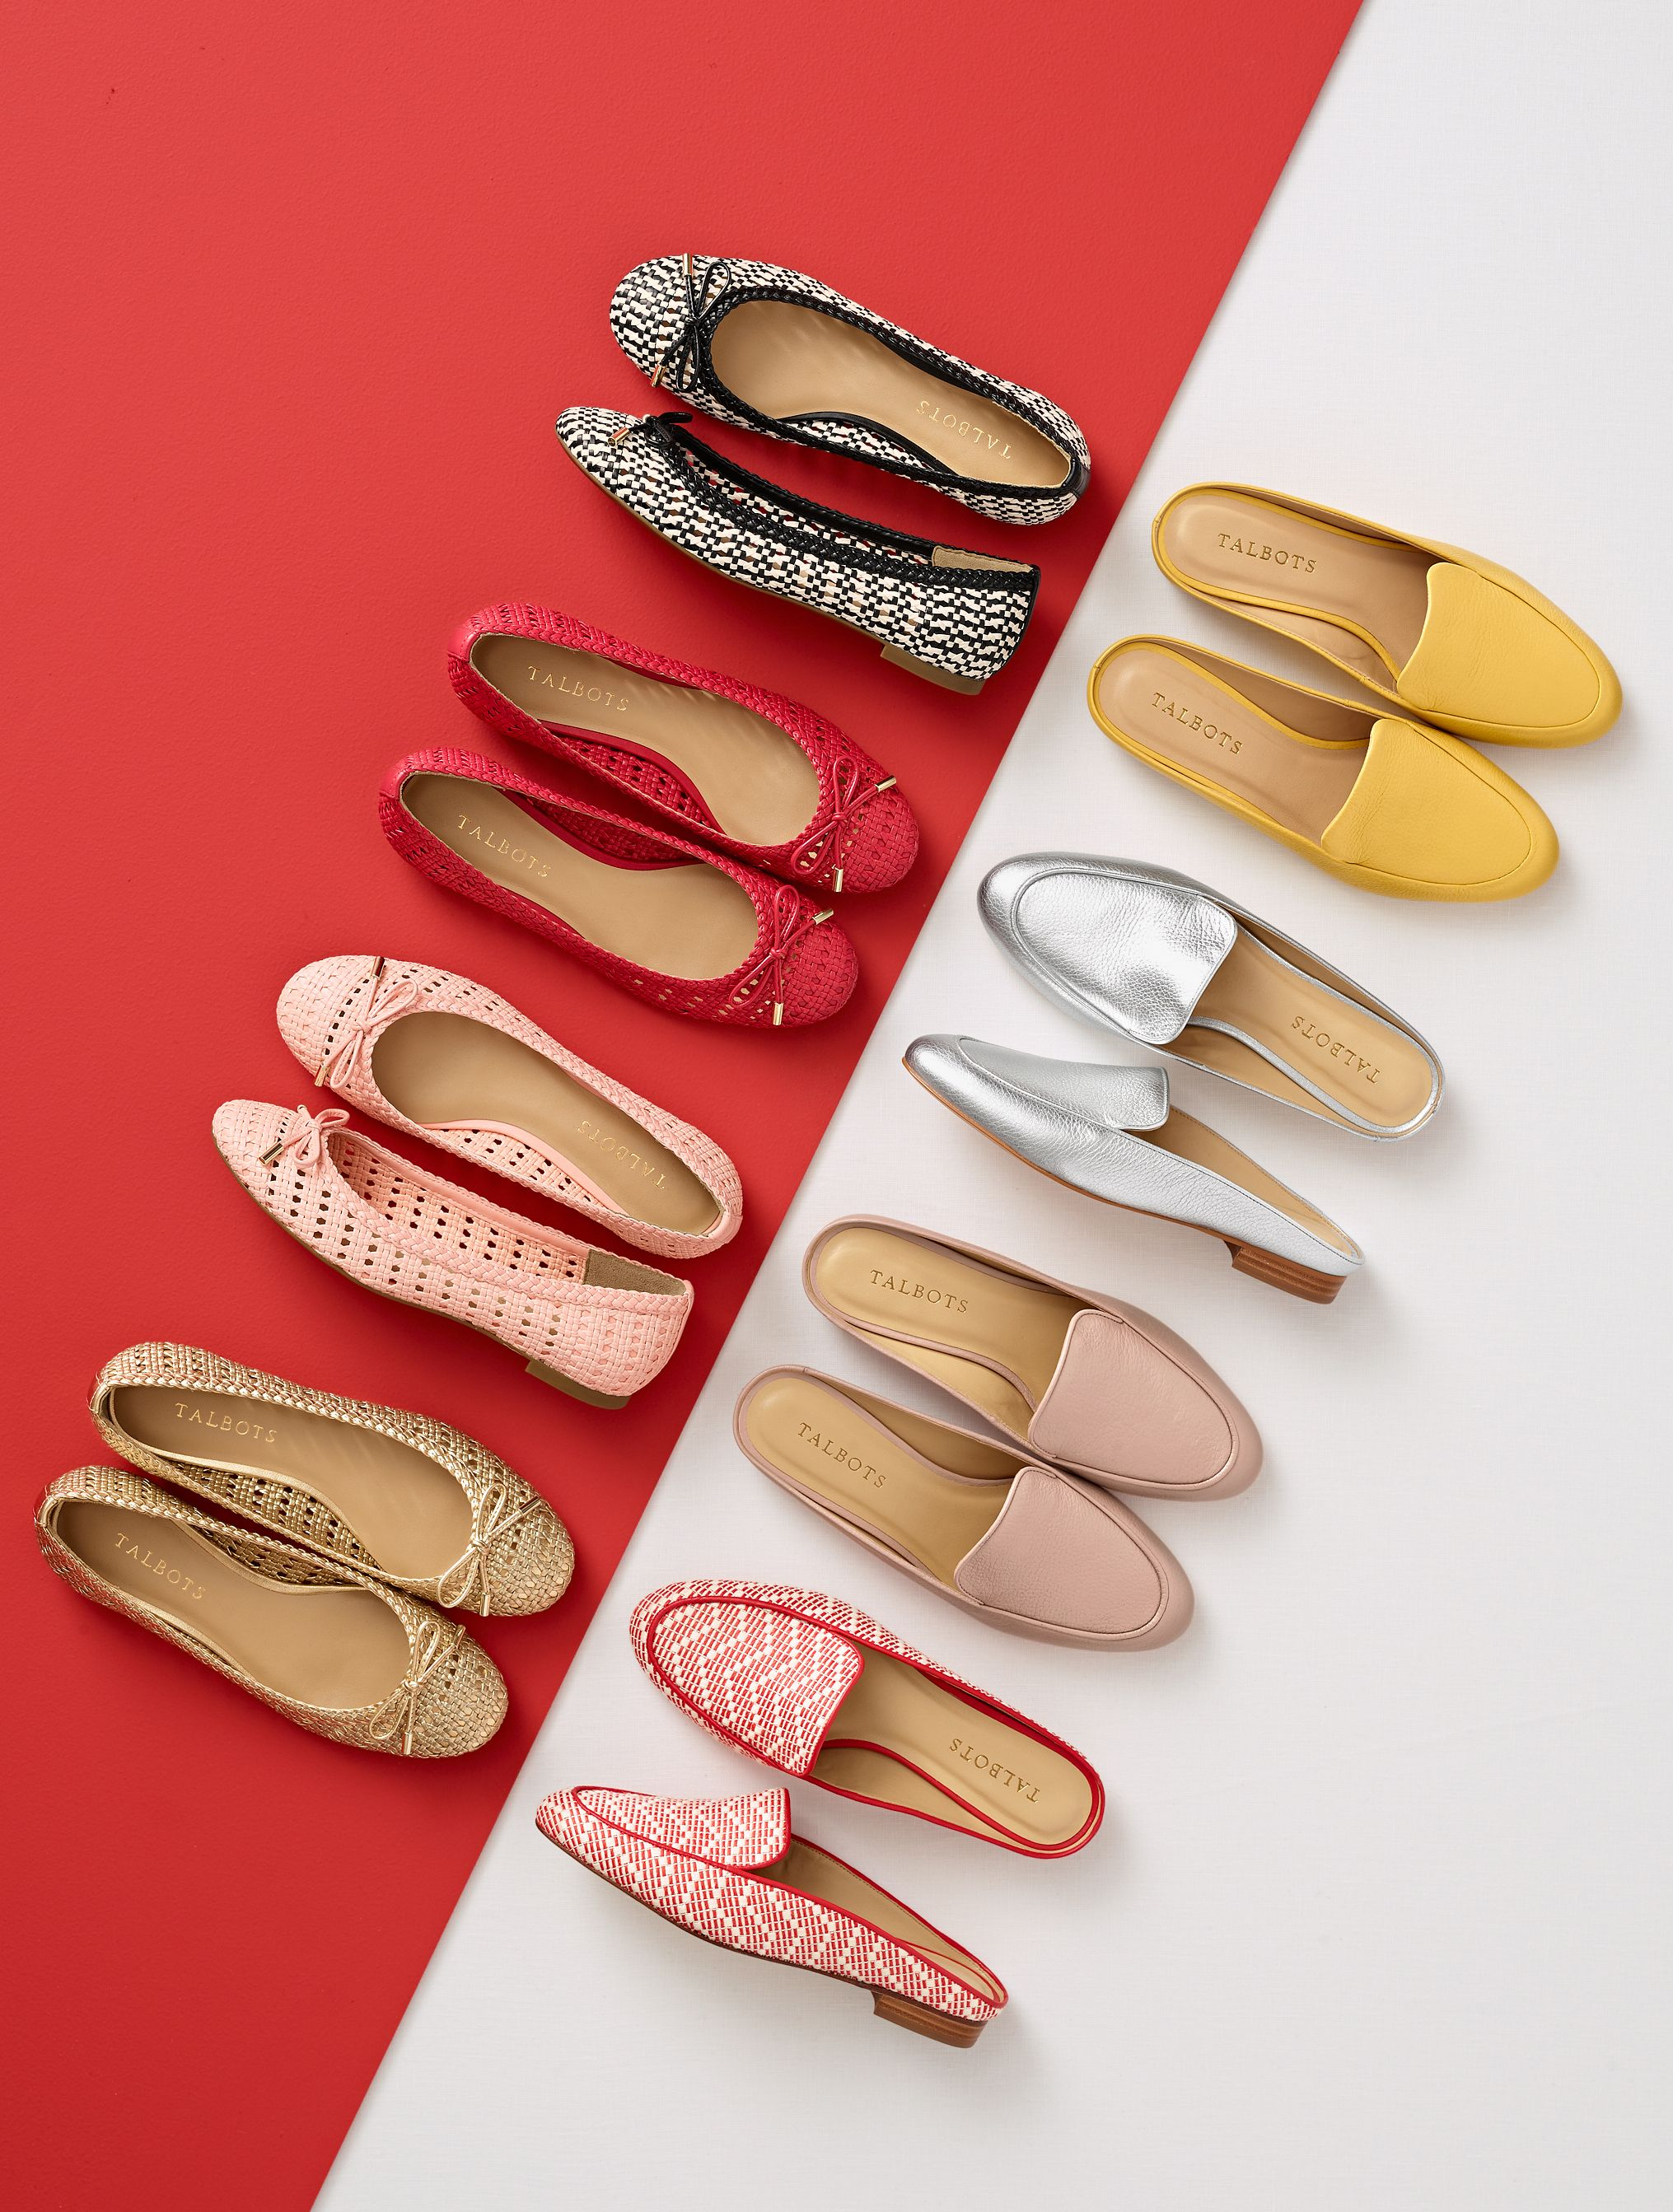 2d0b8d3fd6487 Step into summer wearing one of our must-have fashion shoes of the season.  Wear these polished slip-ons straight from the office to a fundraising  event.